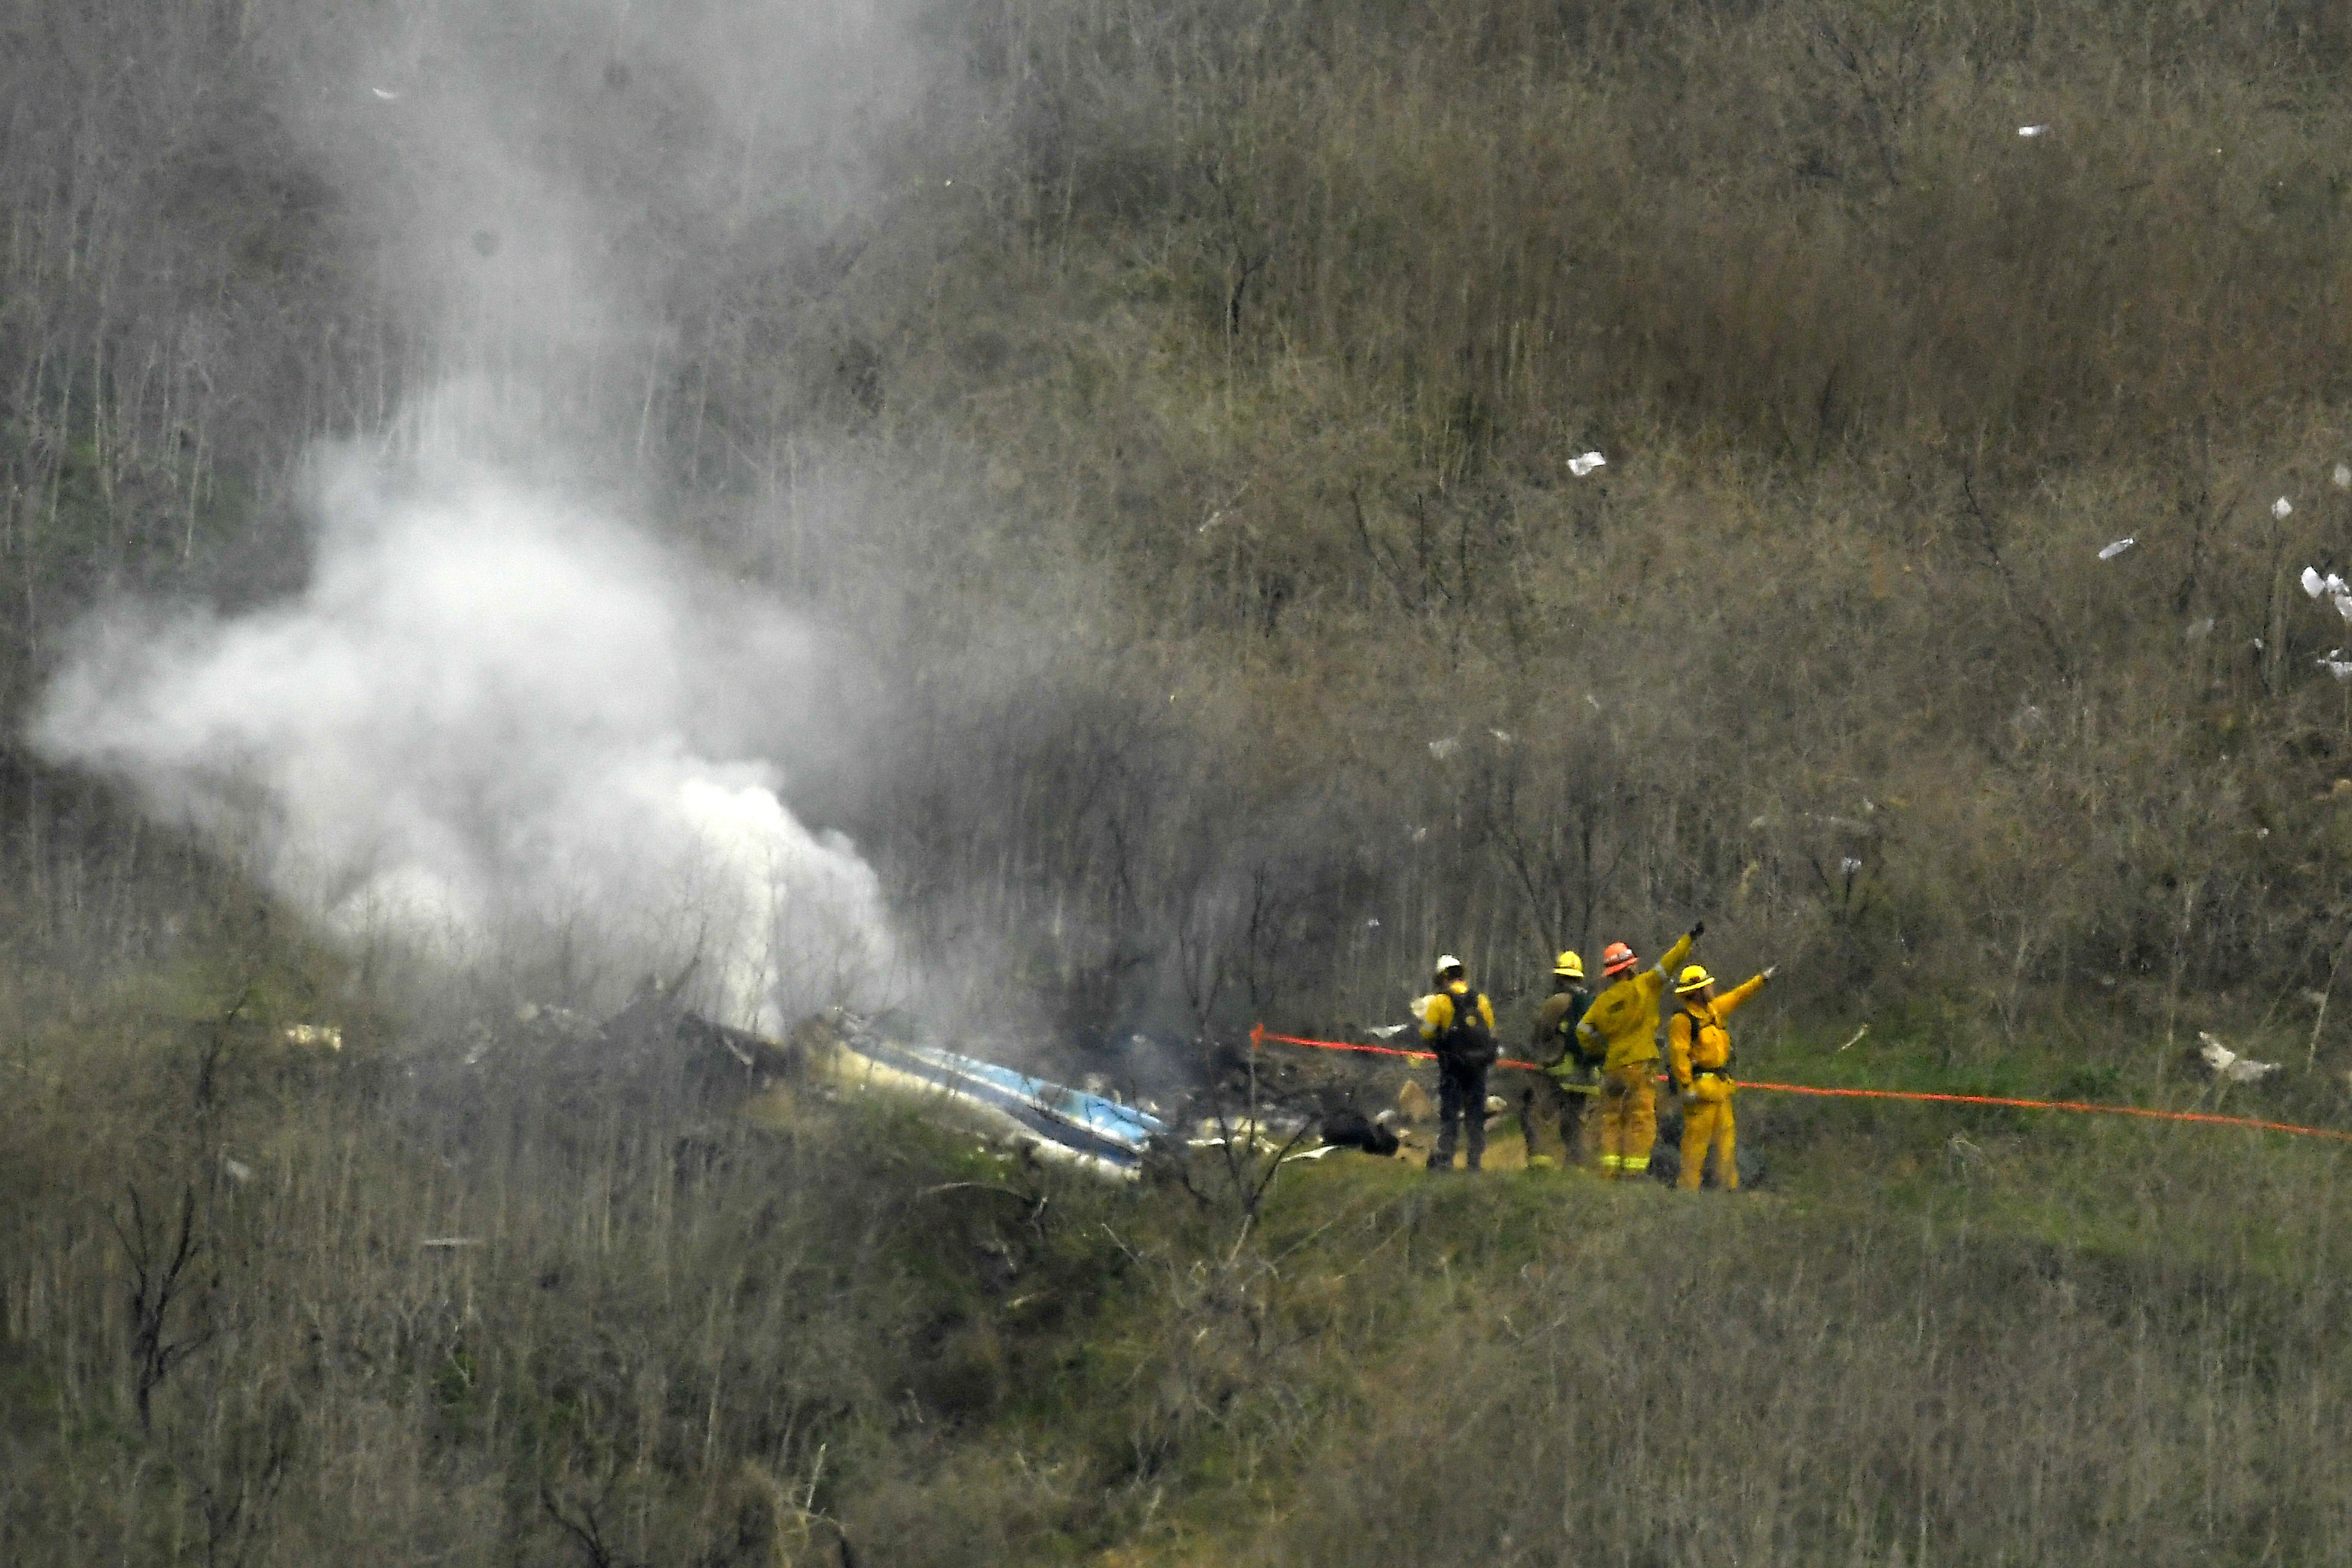 3 other victims in Kobe Bryant helicopter crash identified as baseball coach, family